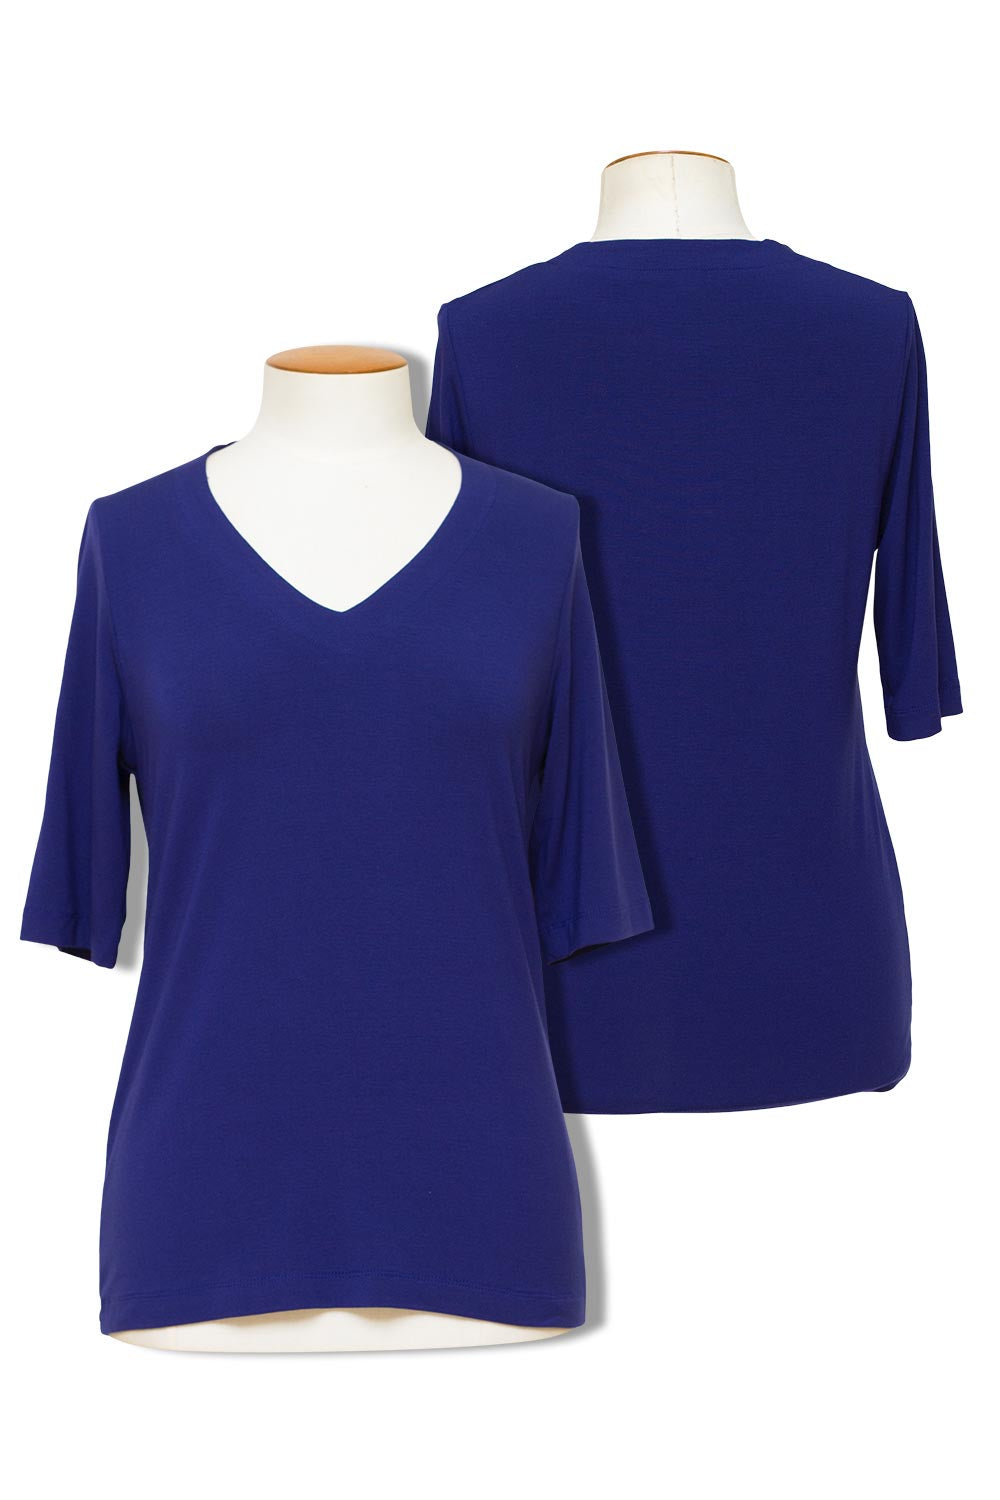 paula-ryan-eaasy-fit-half-sleeve-top